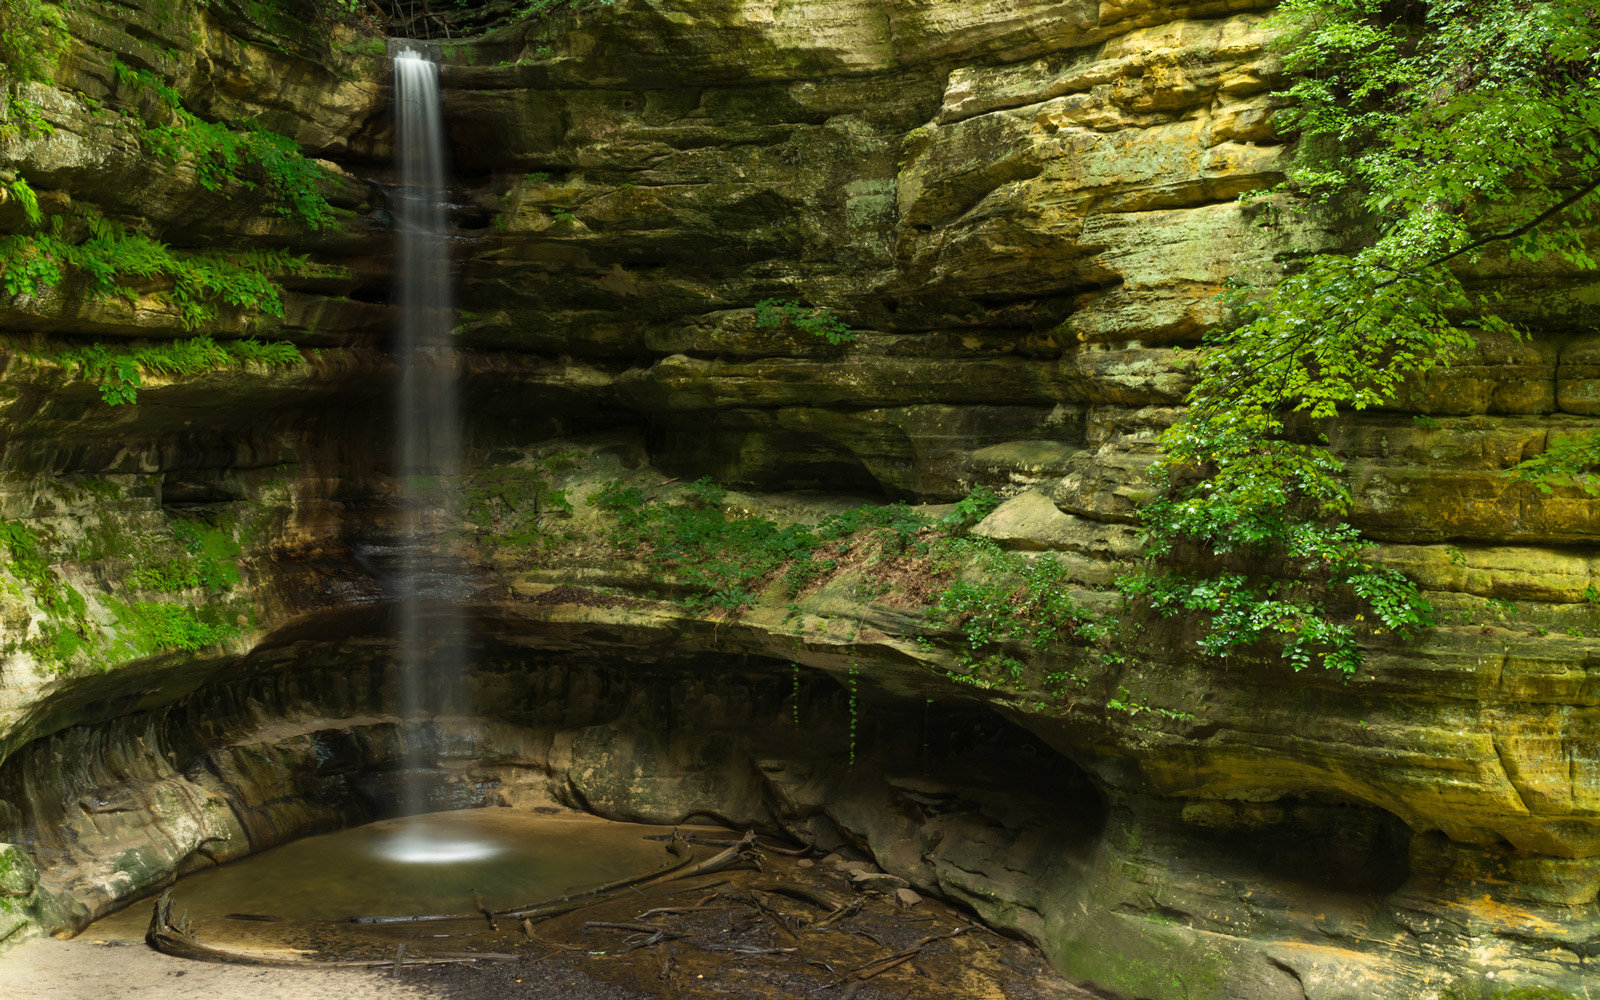 Cascade after the morning Summer rain in St. Louis Canyon.  Starved Rock State Park, Illinois, U.S.A.